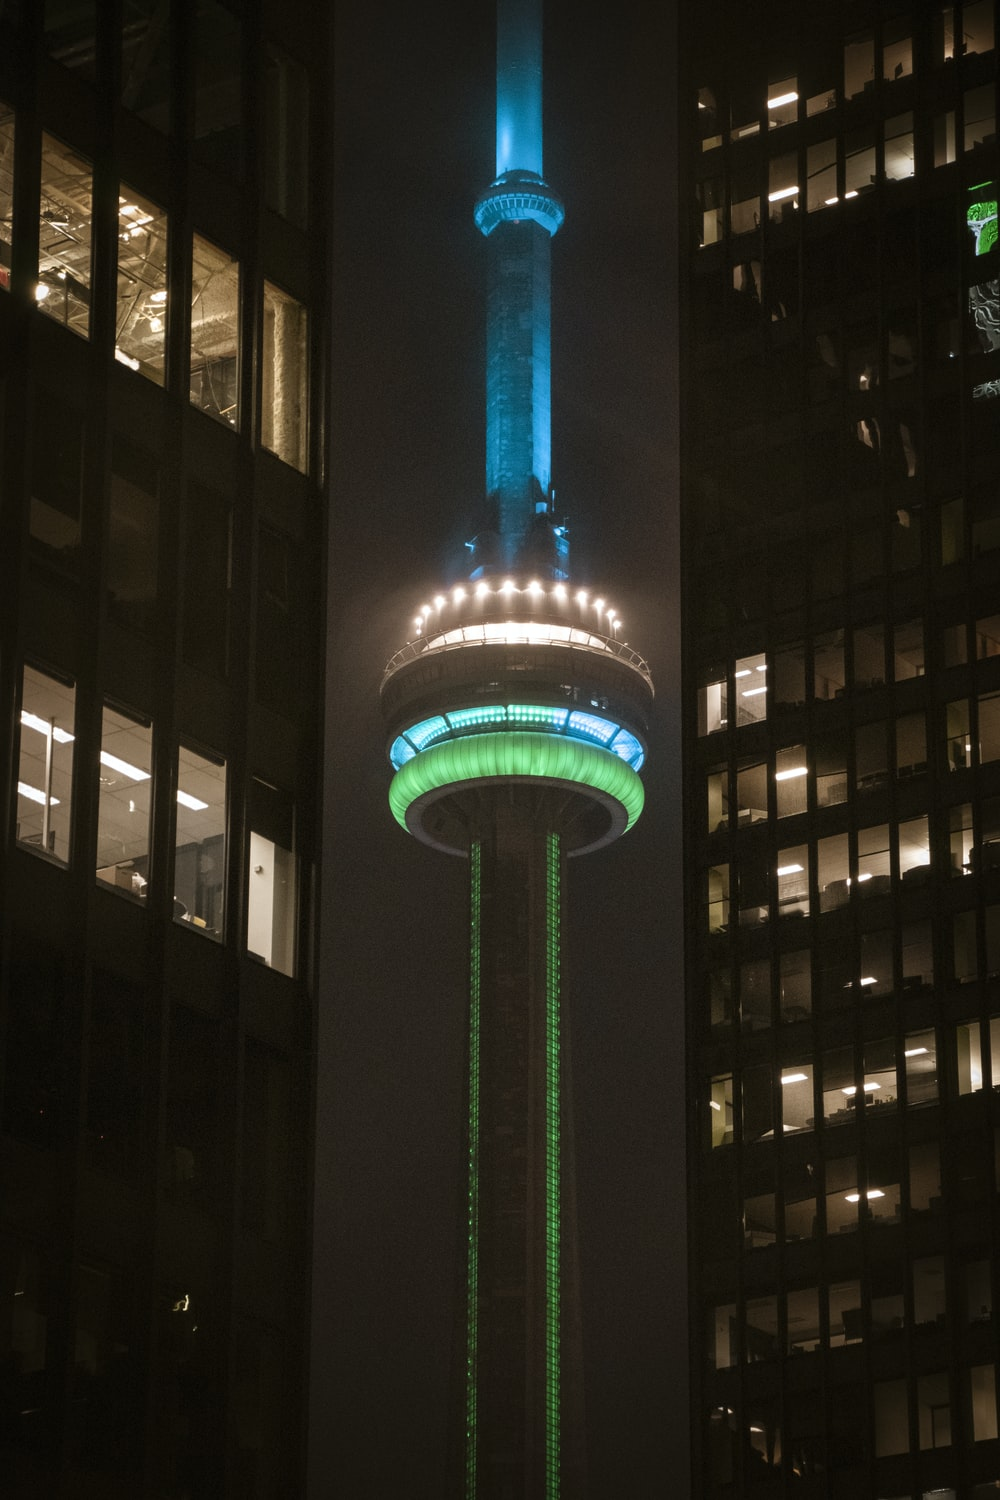 lighted blue and green tower during nighttime